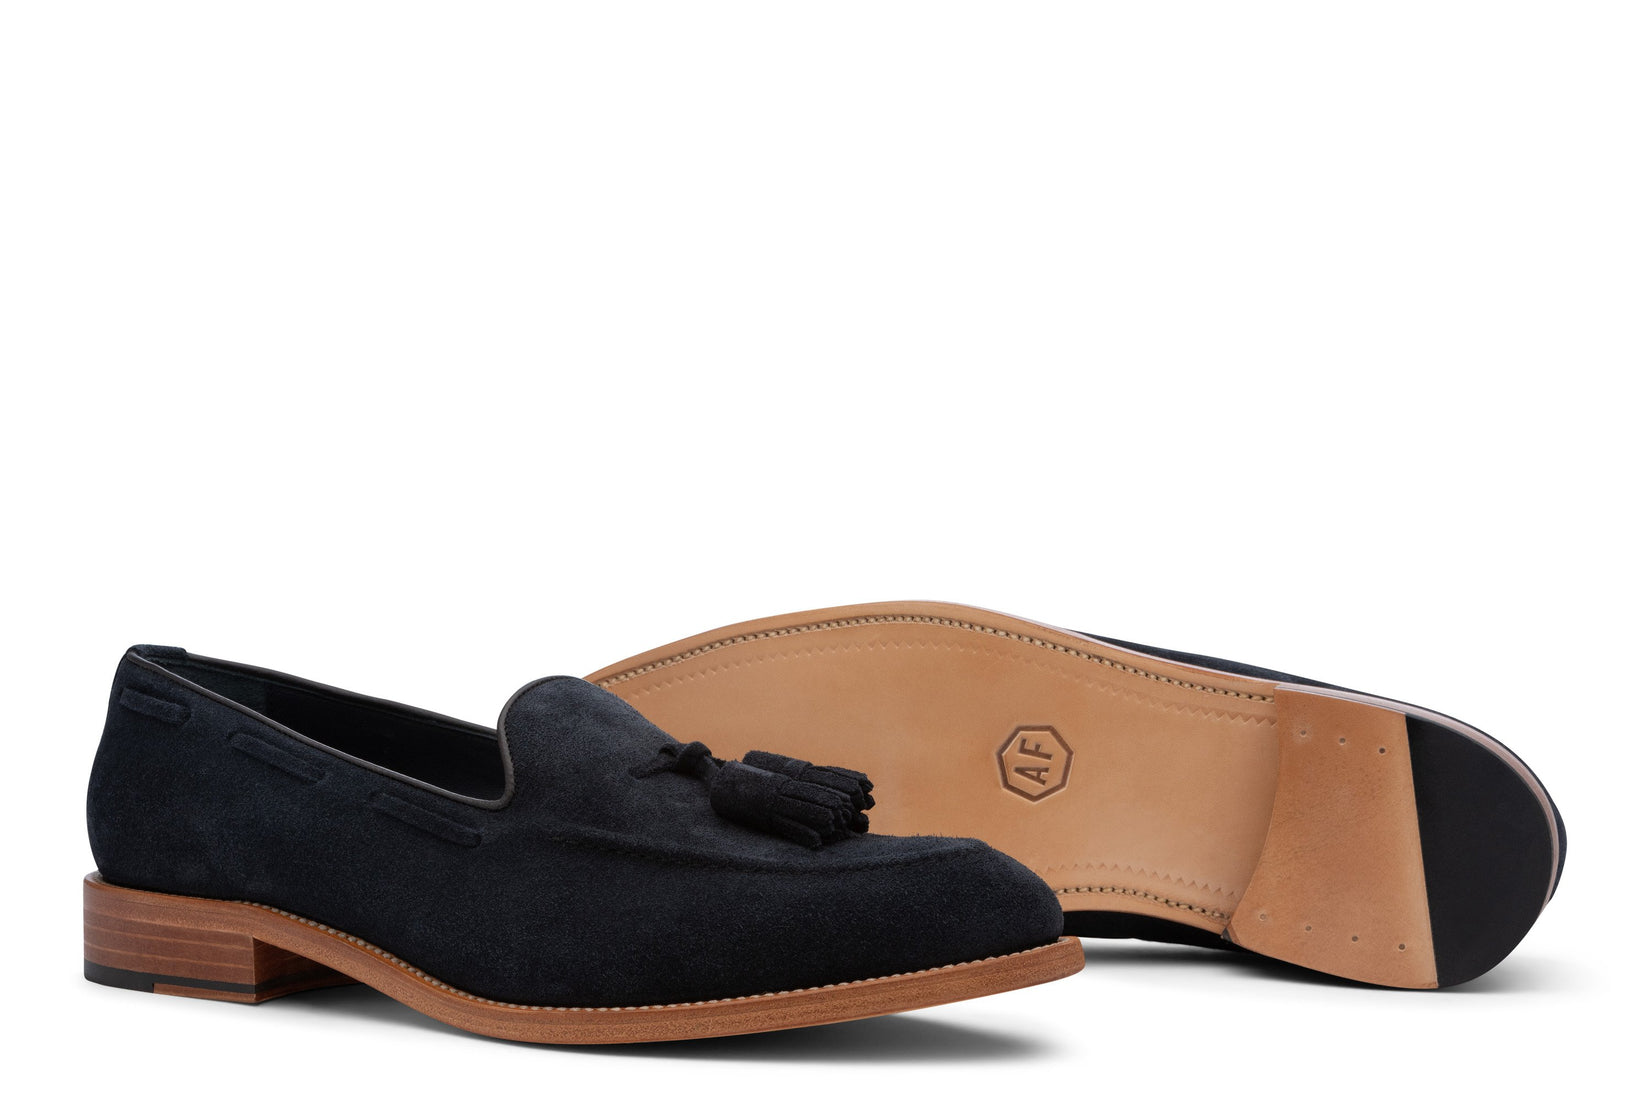 Thursday Tassel loafer in Navy